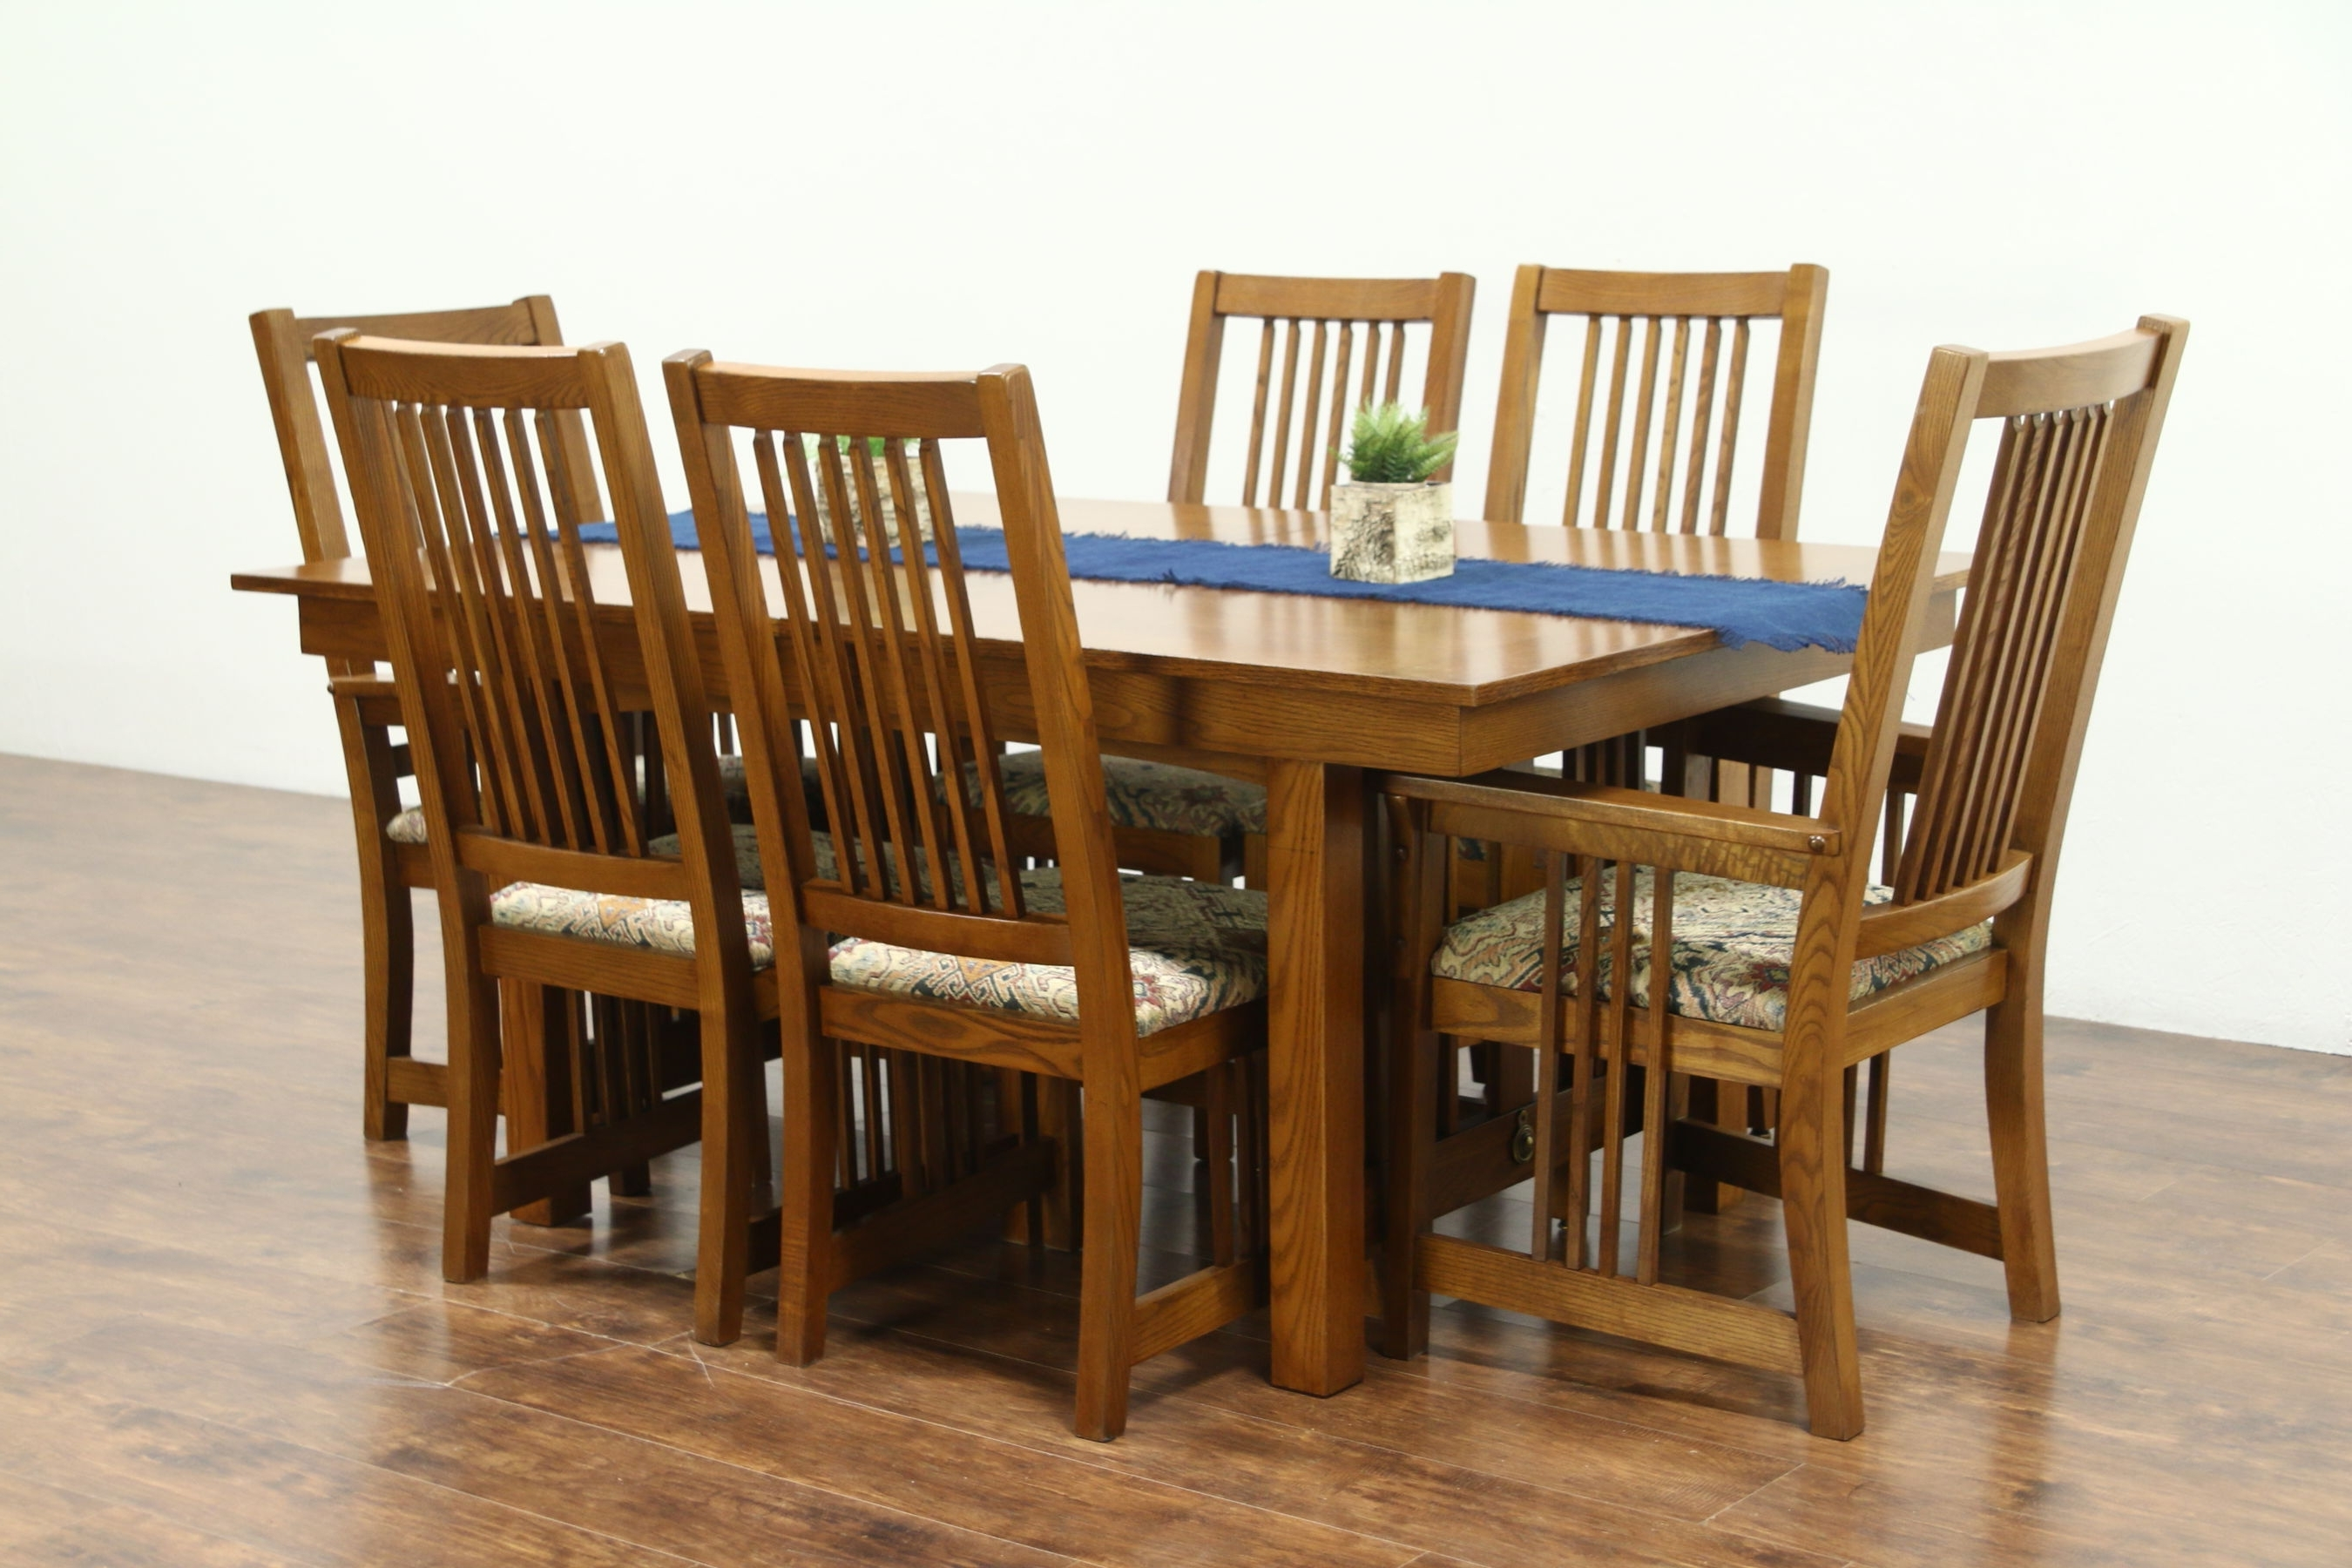 Well Liked Sold – Prairie Or Craftsman Vintage Oak Dining Set, Table, 2 Leaves Pertaining To Oak Dining Tables With 6 Chairs (View 23 of 25)